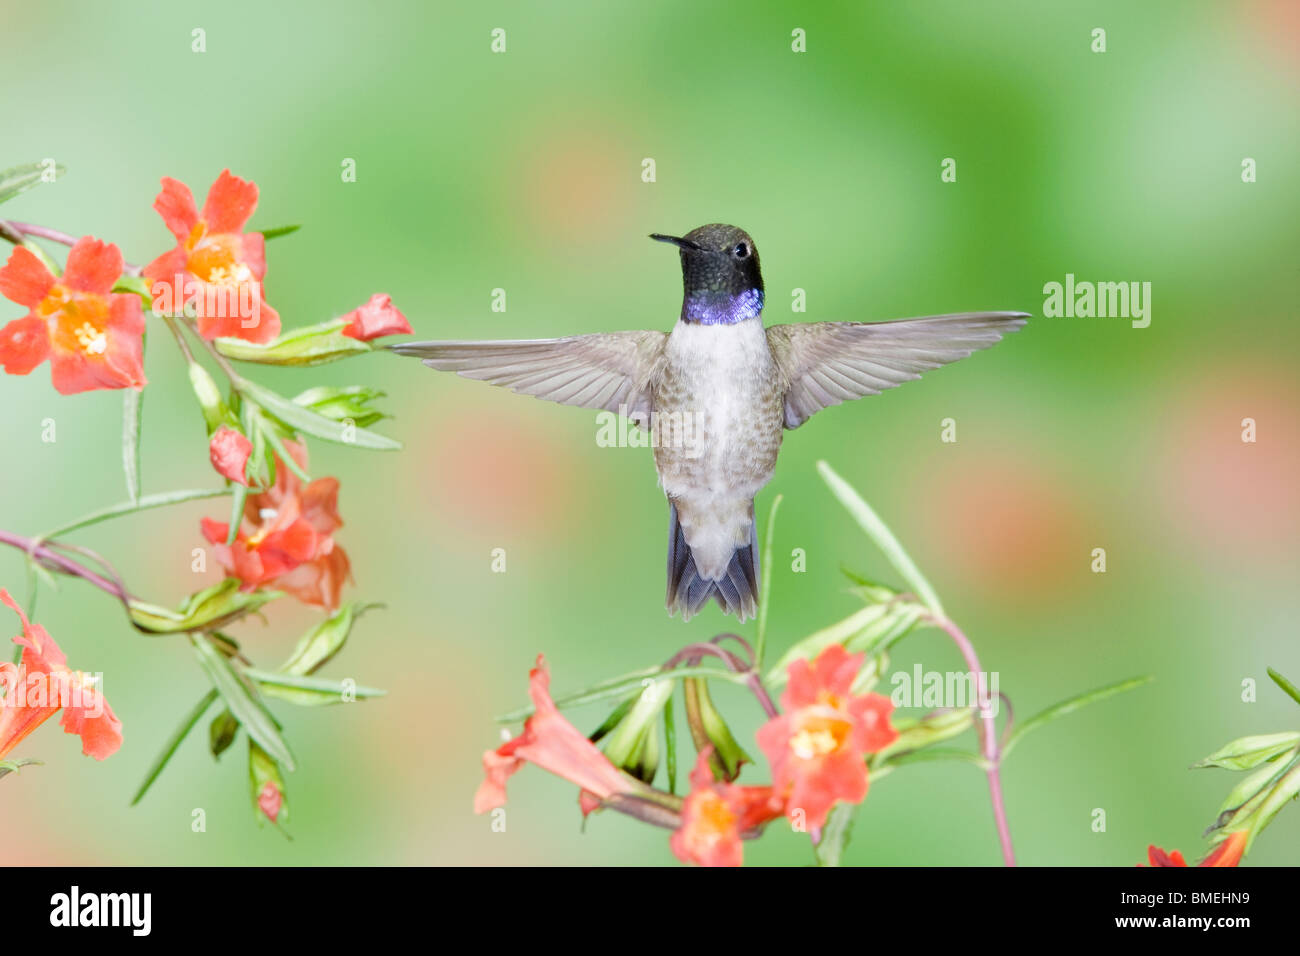 Black-chinned Hummingbird in Scarlet Monkey Flower - Stock Image